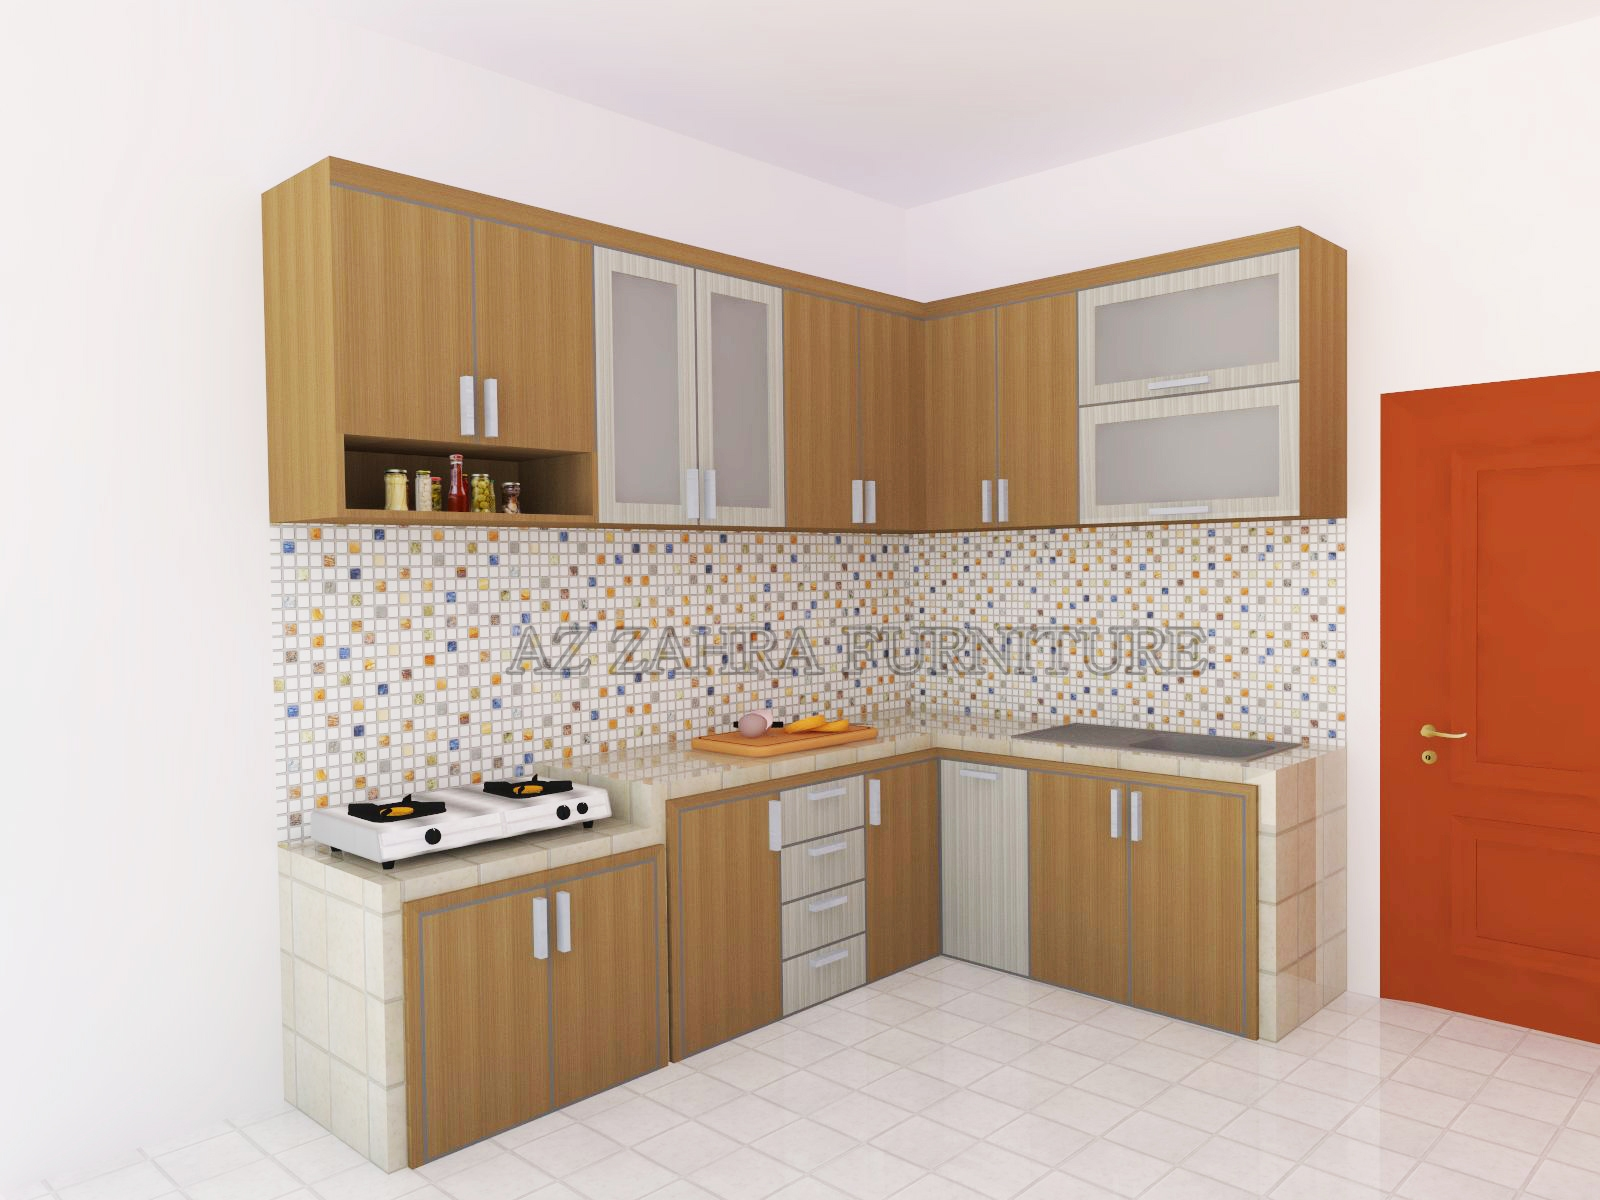 Kitchen set minimalis murah semarang azzahra furniture for Paket kitchen set murah